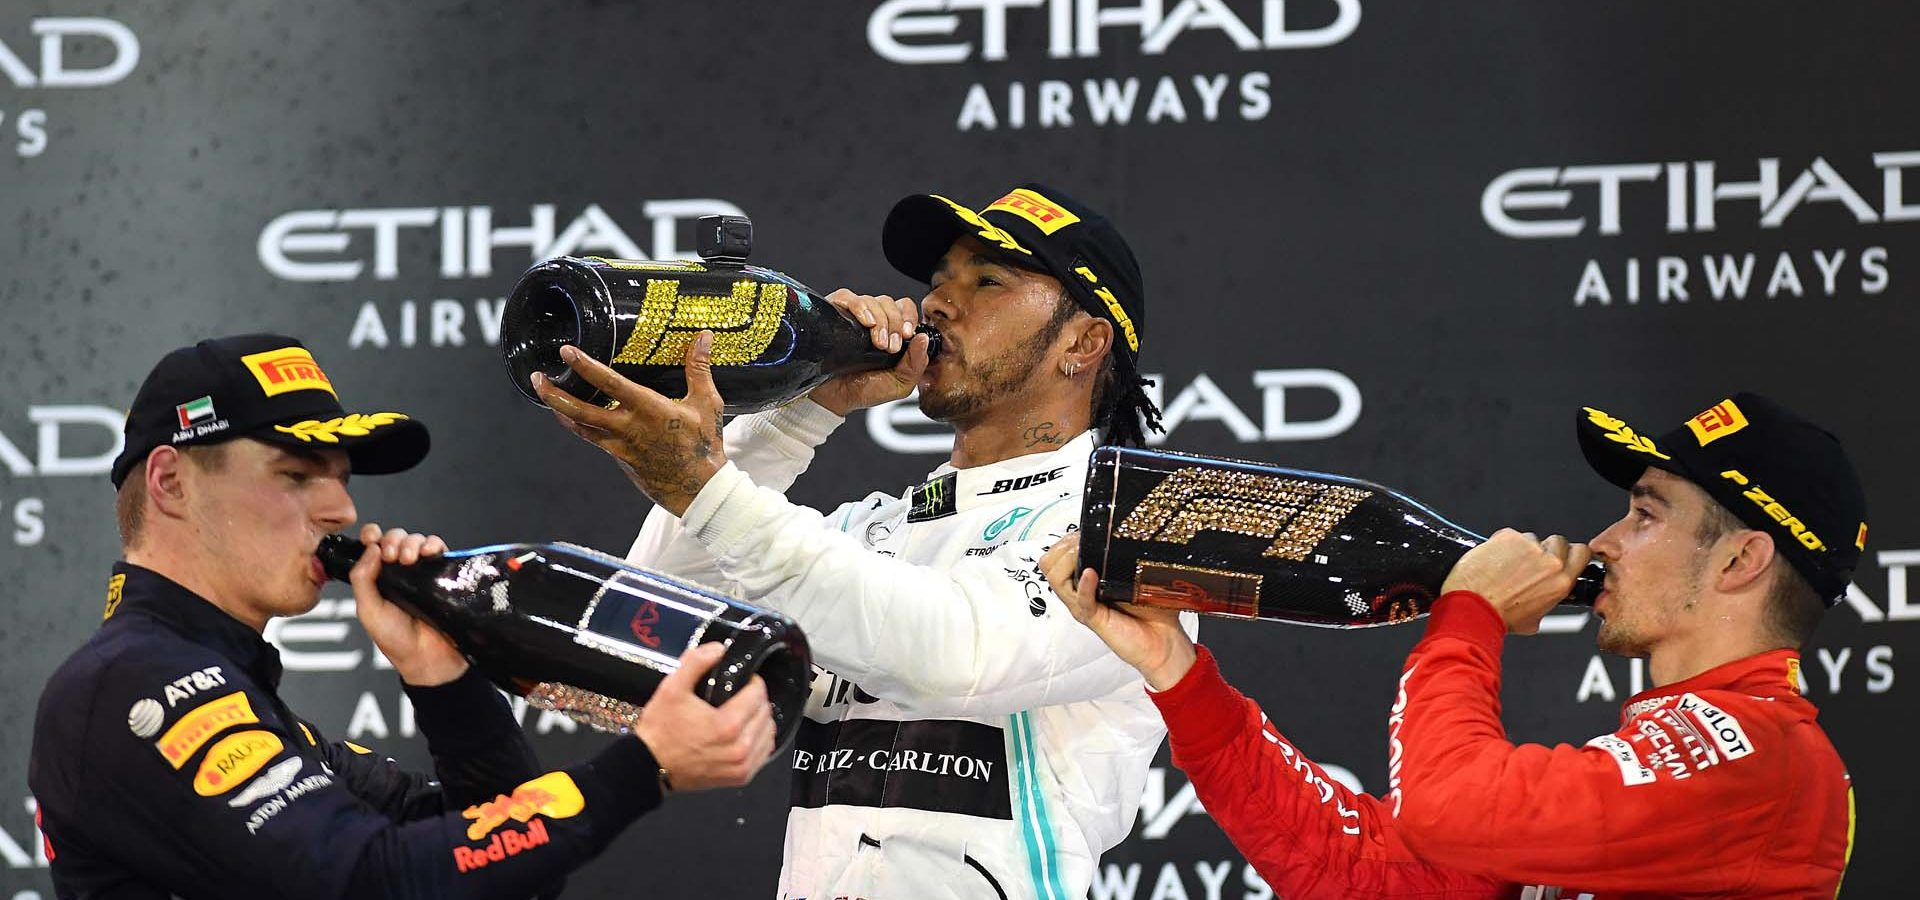 ABU DHABI, UNITED ARAB EMIRATES - DECEMBER 01: Top three finishers Lewis Hamilton of Great Britain and Mercedes GP, Max Verstappen of Netherlands and Red Bull Racing and Charles Leclerc of Monaco and Ferrari celebrate on the podium during the F1 Grand Prix of Abu Dhabi at Yas Marina Circuit on December 01, 2019 in Abu Dhabi, United Arab Emirates. (Photo by Clive Mason/Getty Images) // Getty Images / Red Bull Content Pool  // AP-22BV9XWW12111 // Usage for editorial use only //